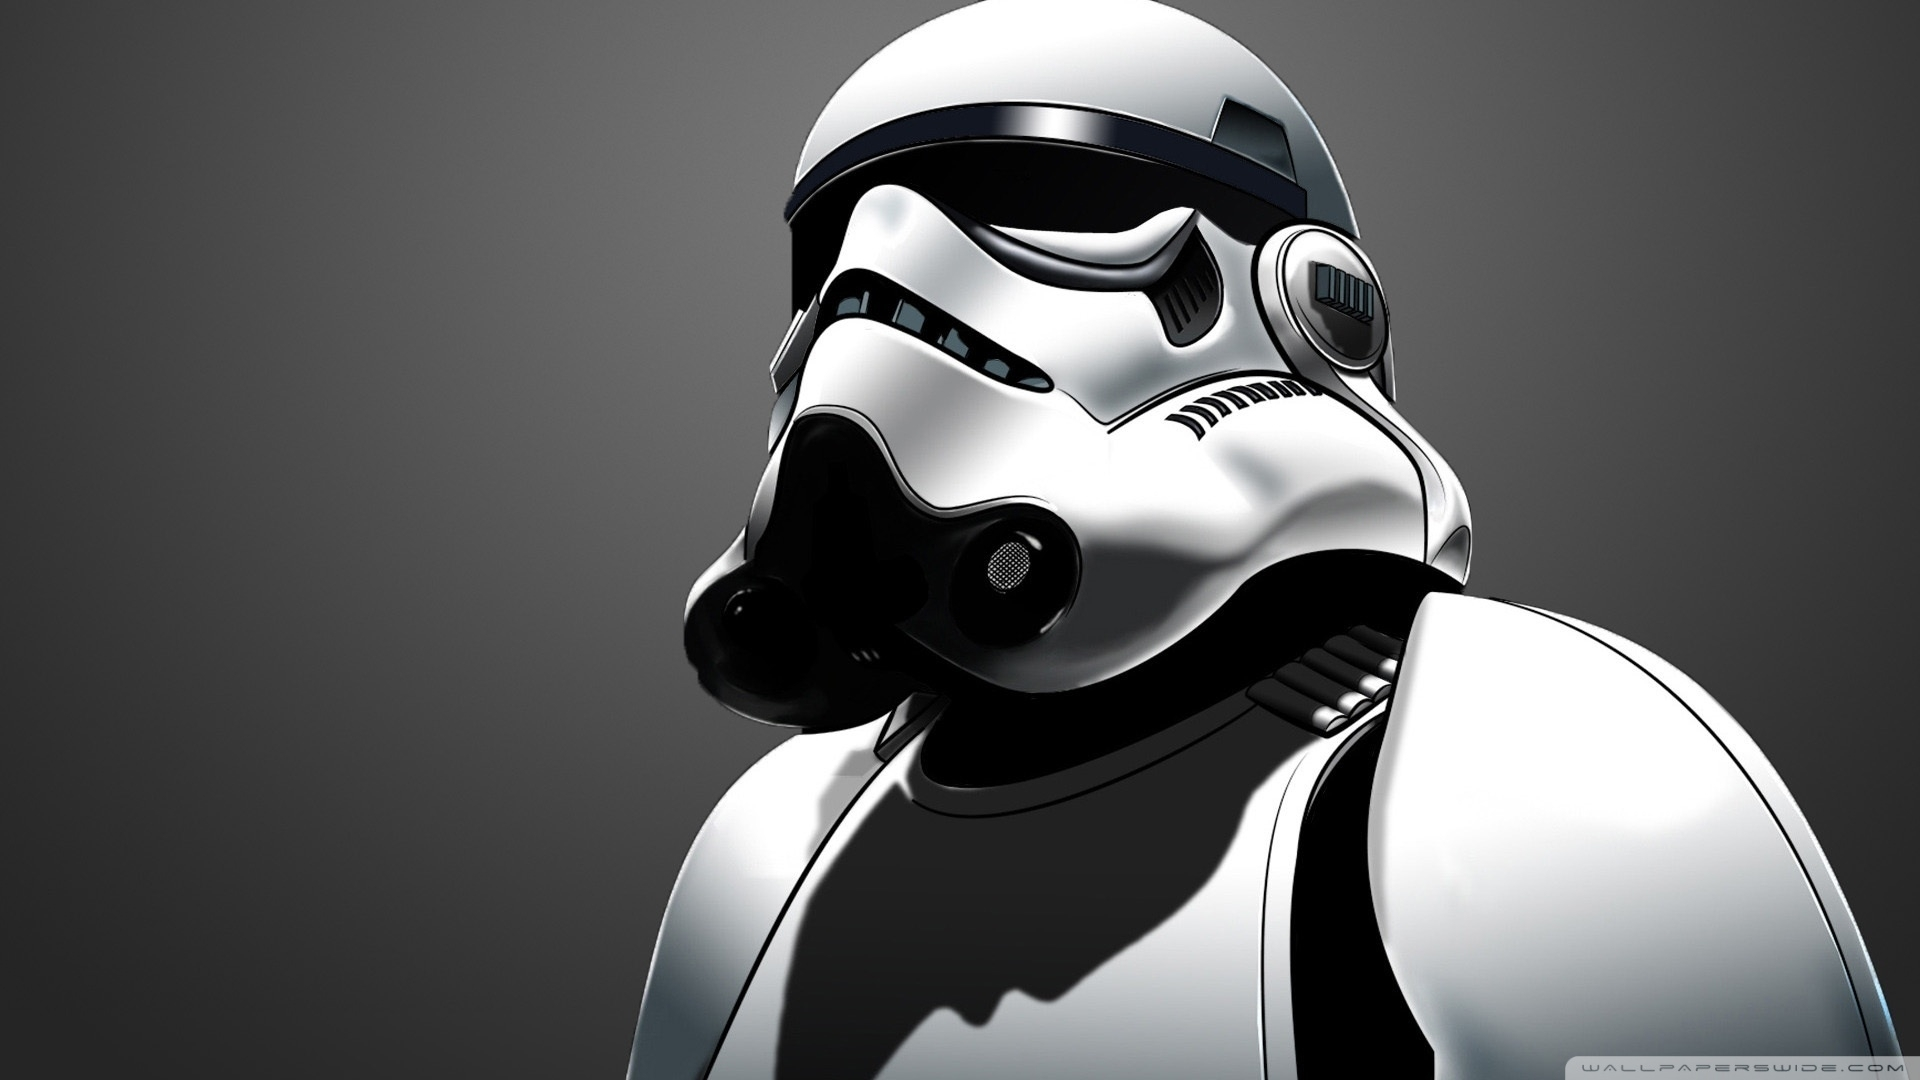 star wars - storm trooper ❤ 4k hd desktop wallpaper for 4k ultra hd